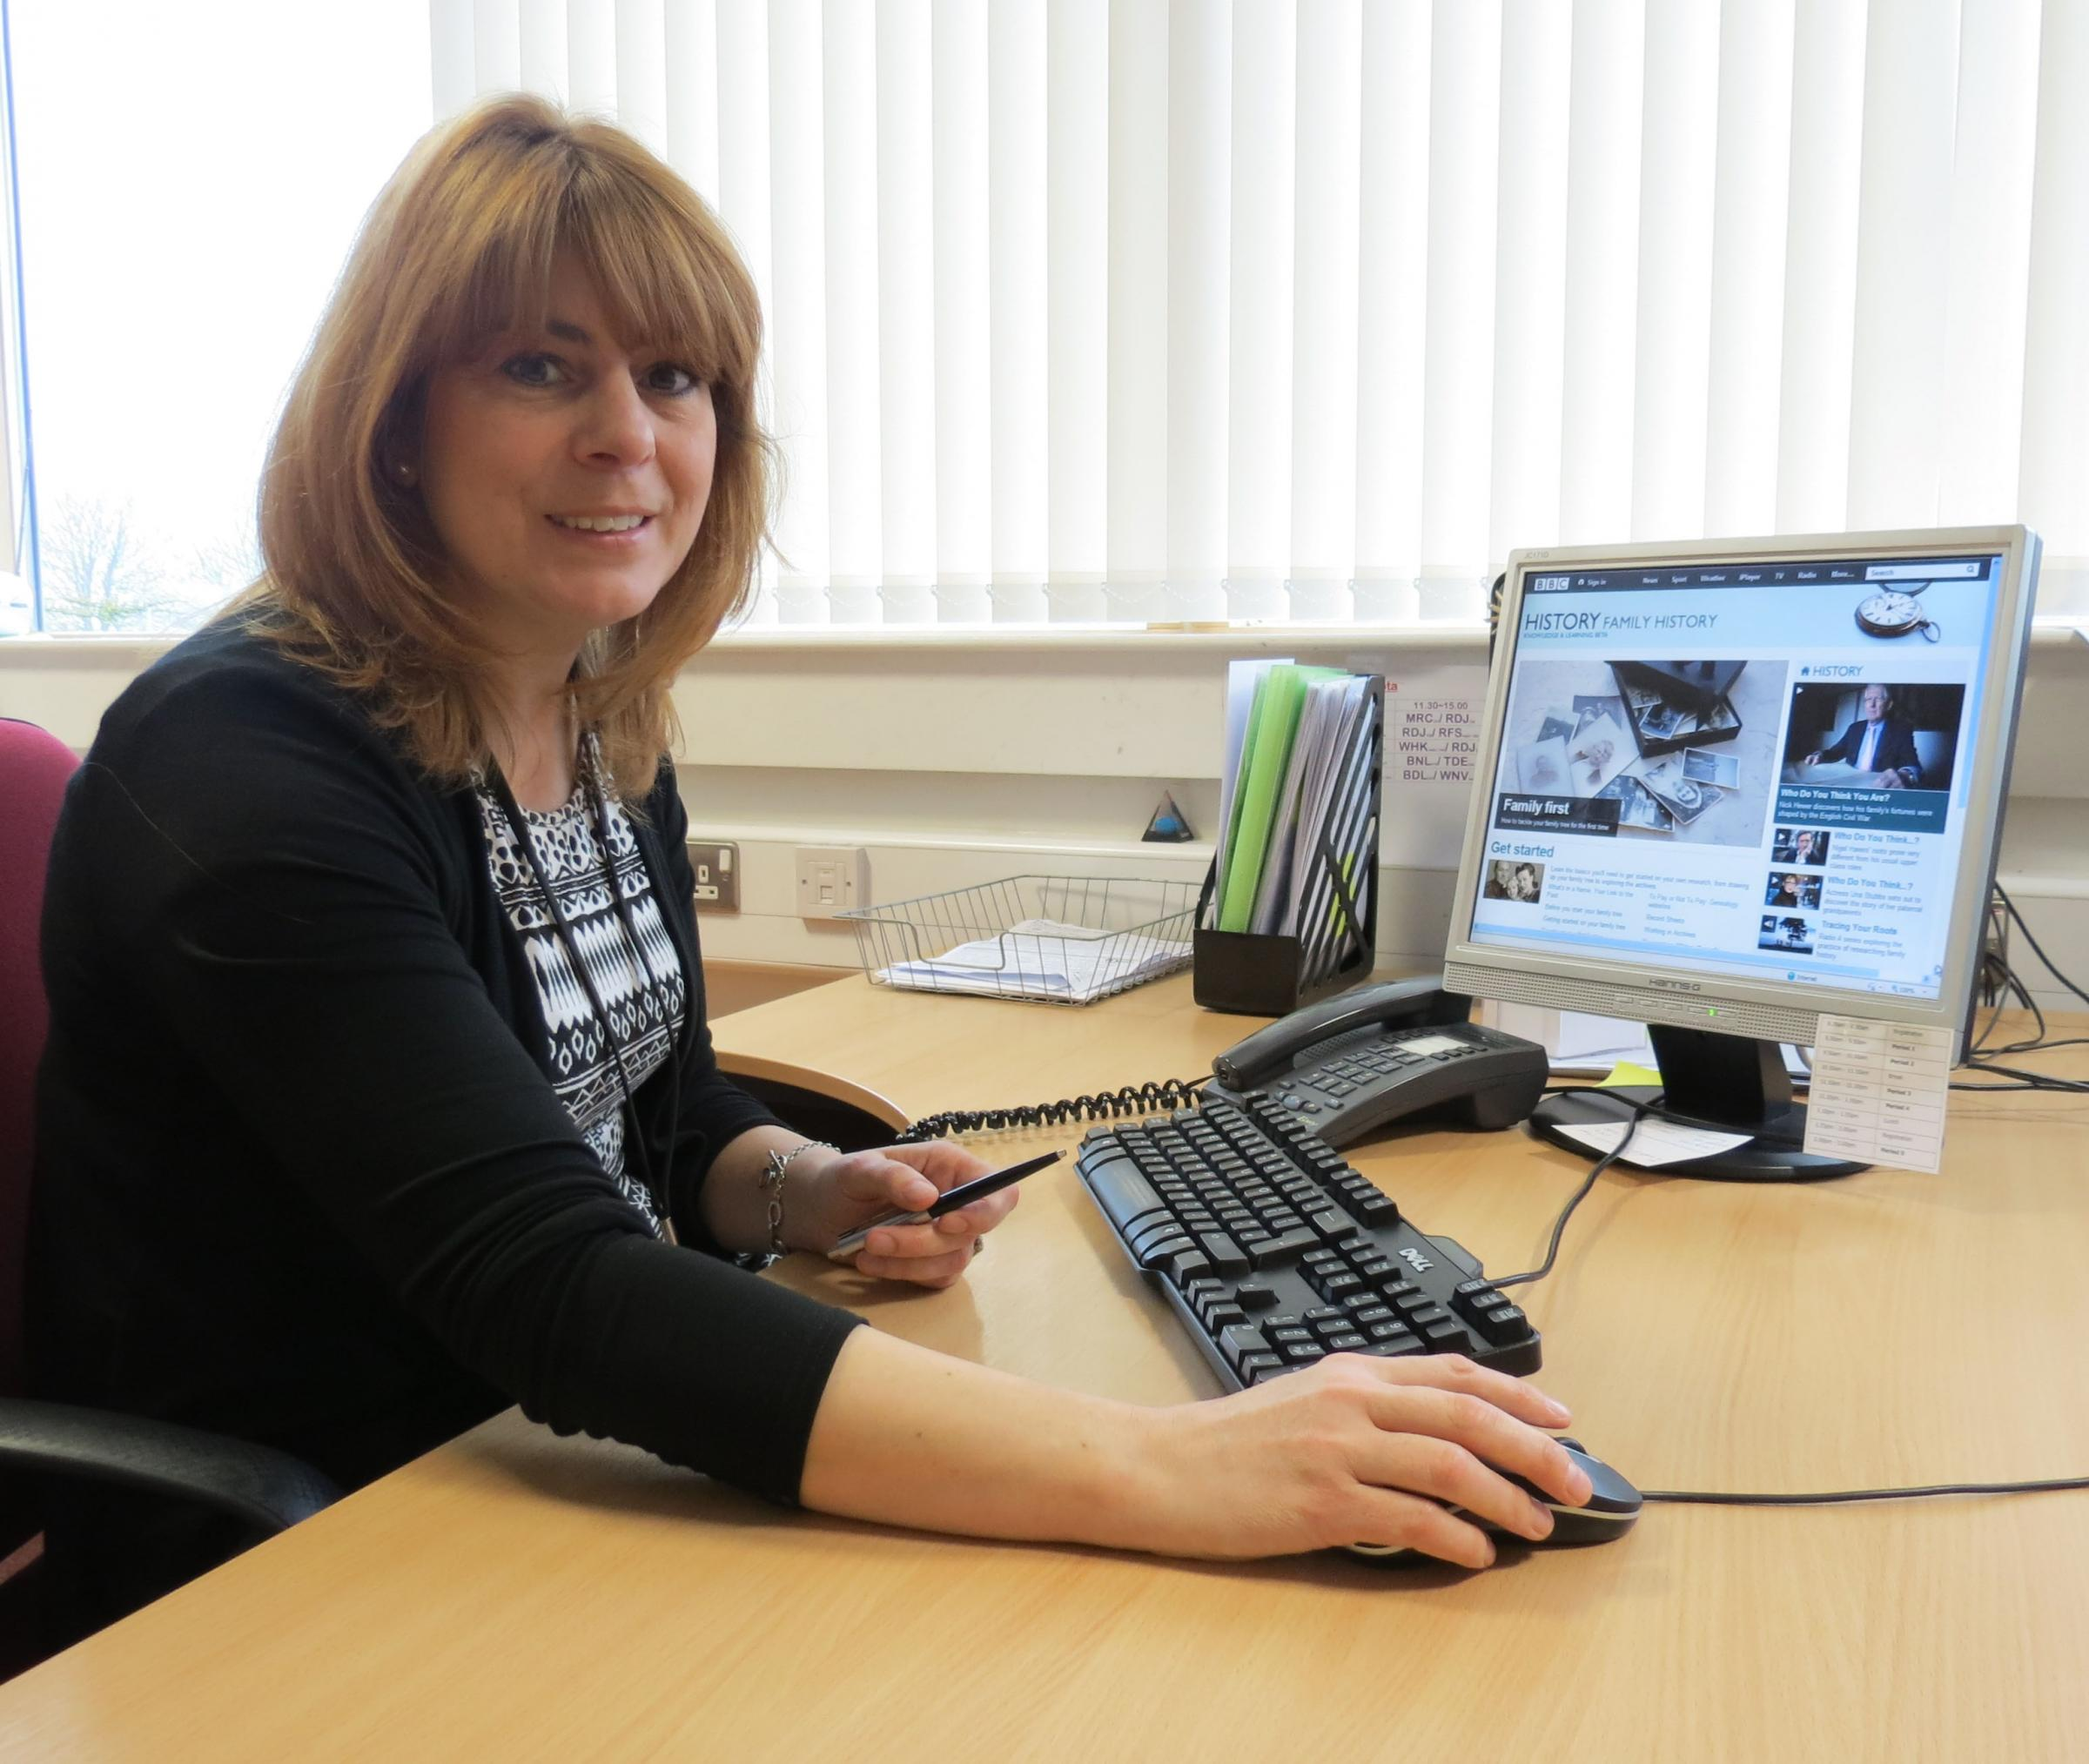 Emma Treweek, who is among those looking forward to starting the new IT-based Family History community education course at Prince Henry's Grammar School in Otley this month